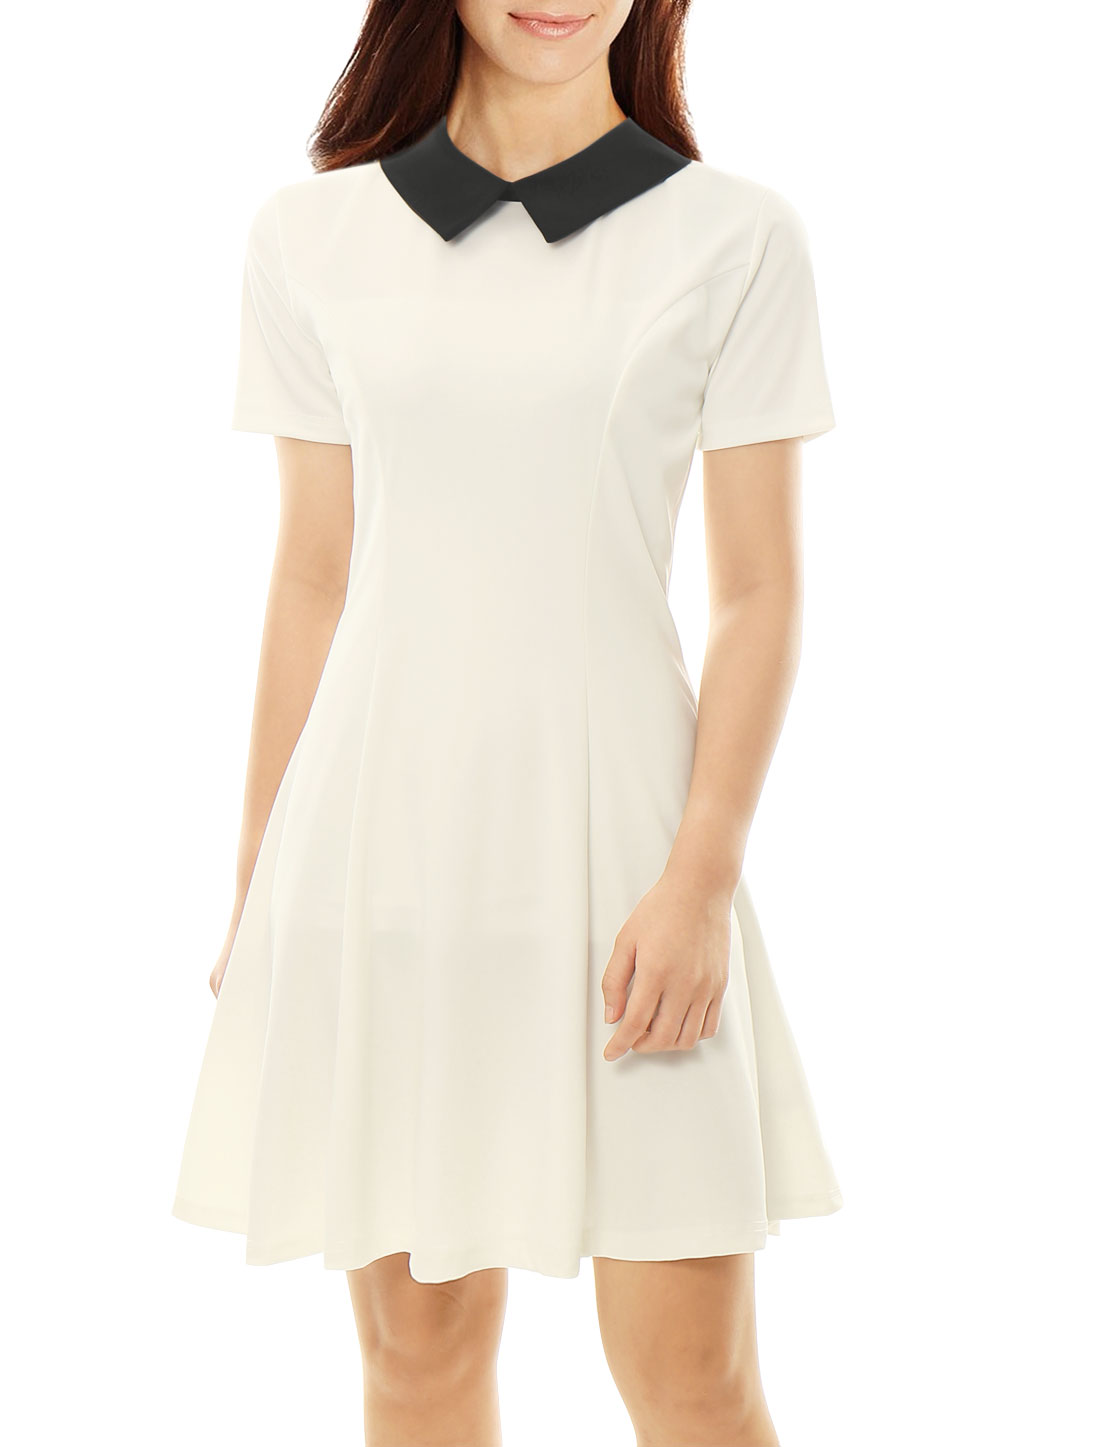 Women Contrast Doll Collar Short Sleeves Flare Dress White S